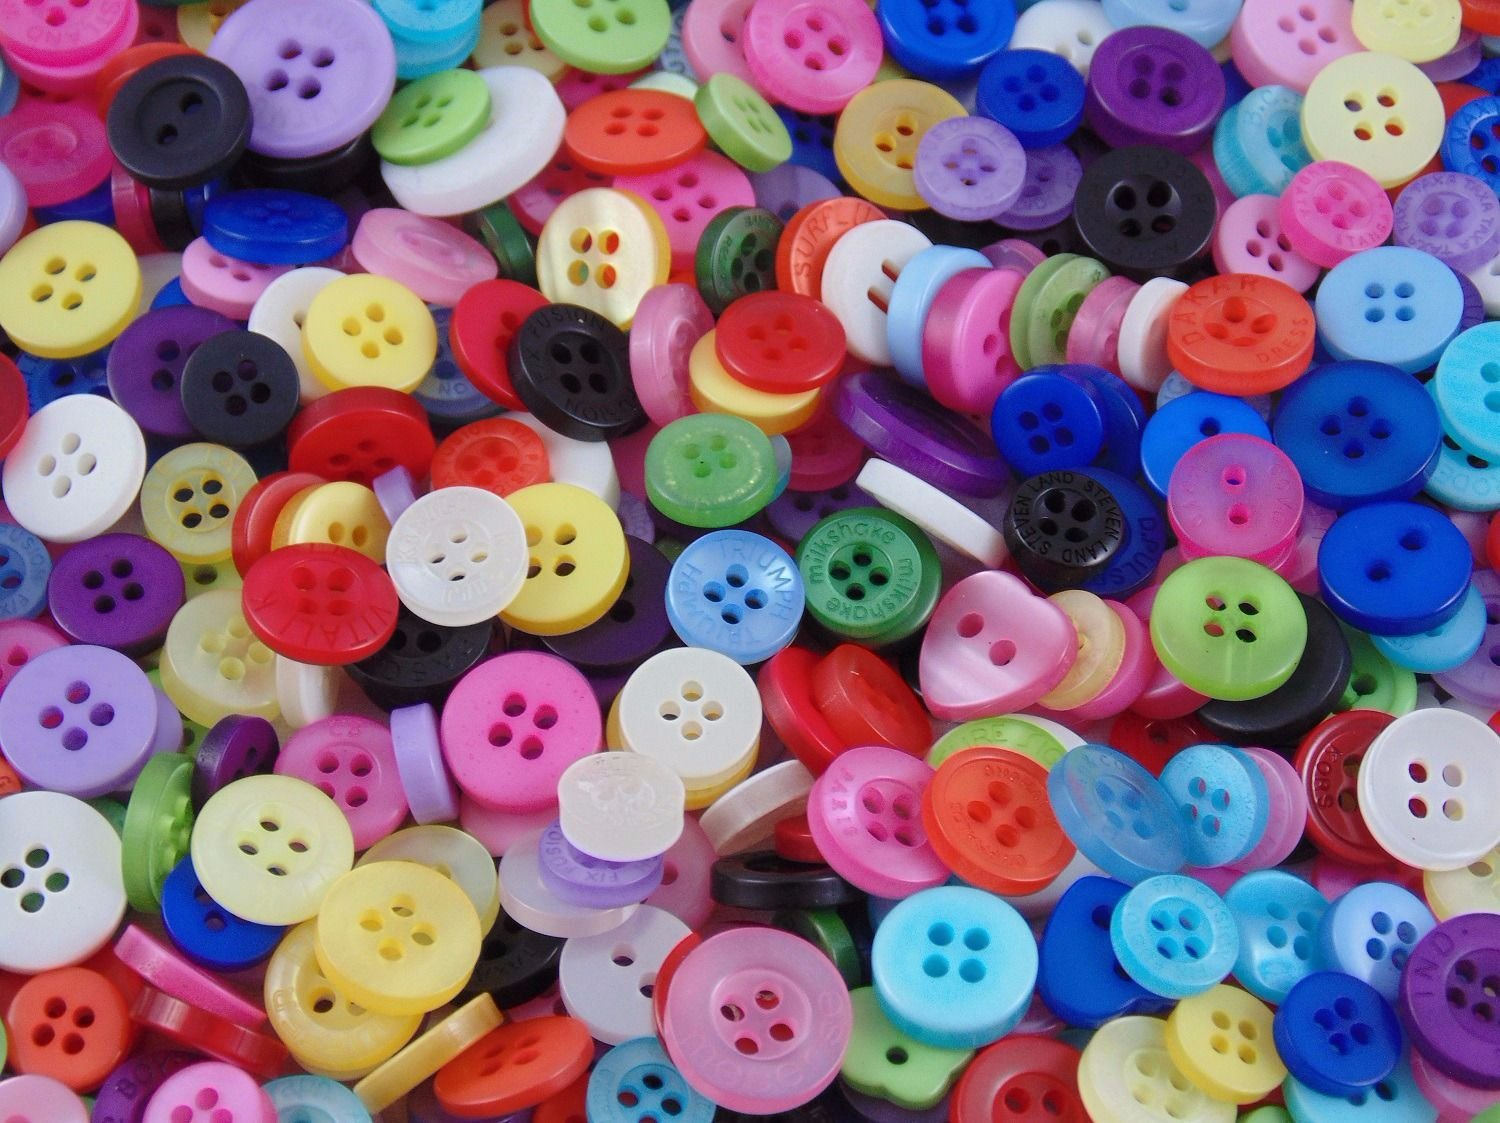 Mixed Buttons Resin Sewing Crafts Knitting Crochet 100gm Red White /& Blue